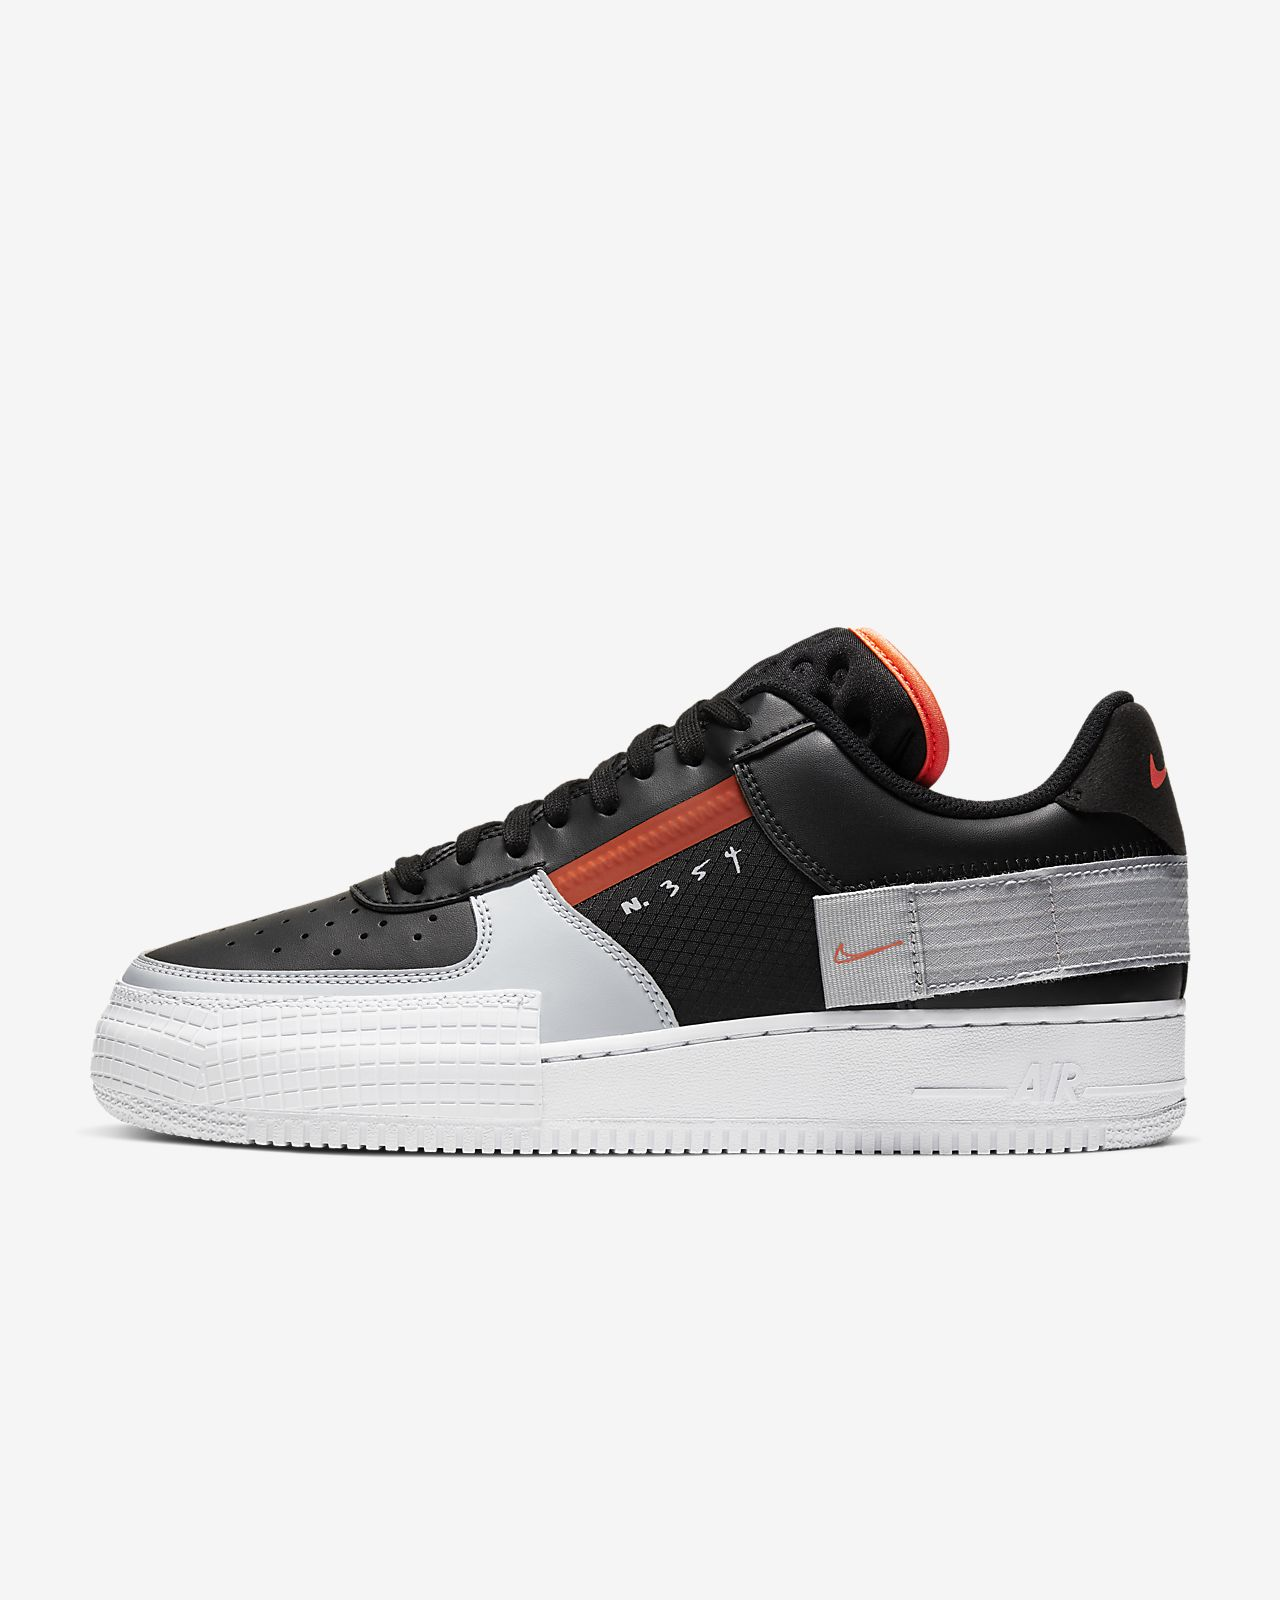 Nike Air Force 1 Type sko til mænd